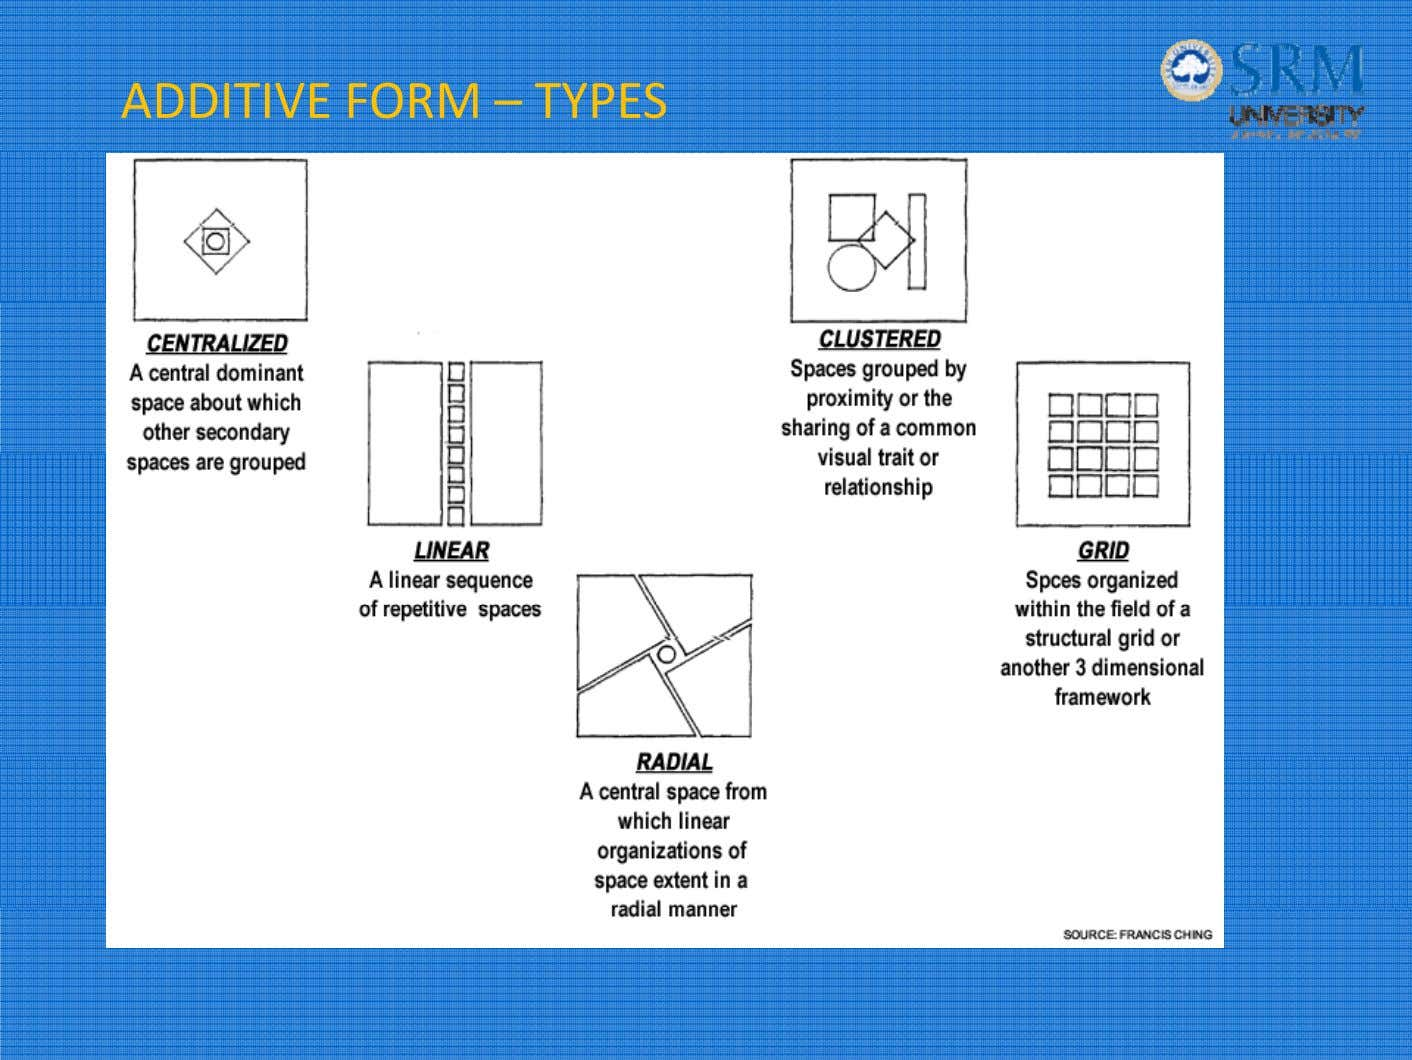 ADDITIVE FORM – TYPES